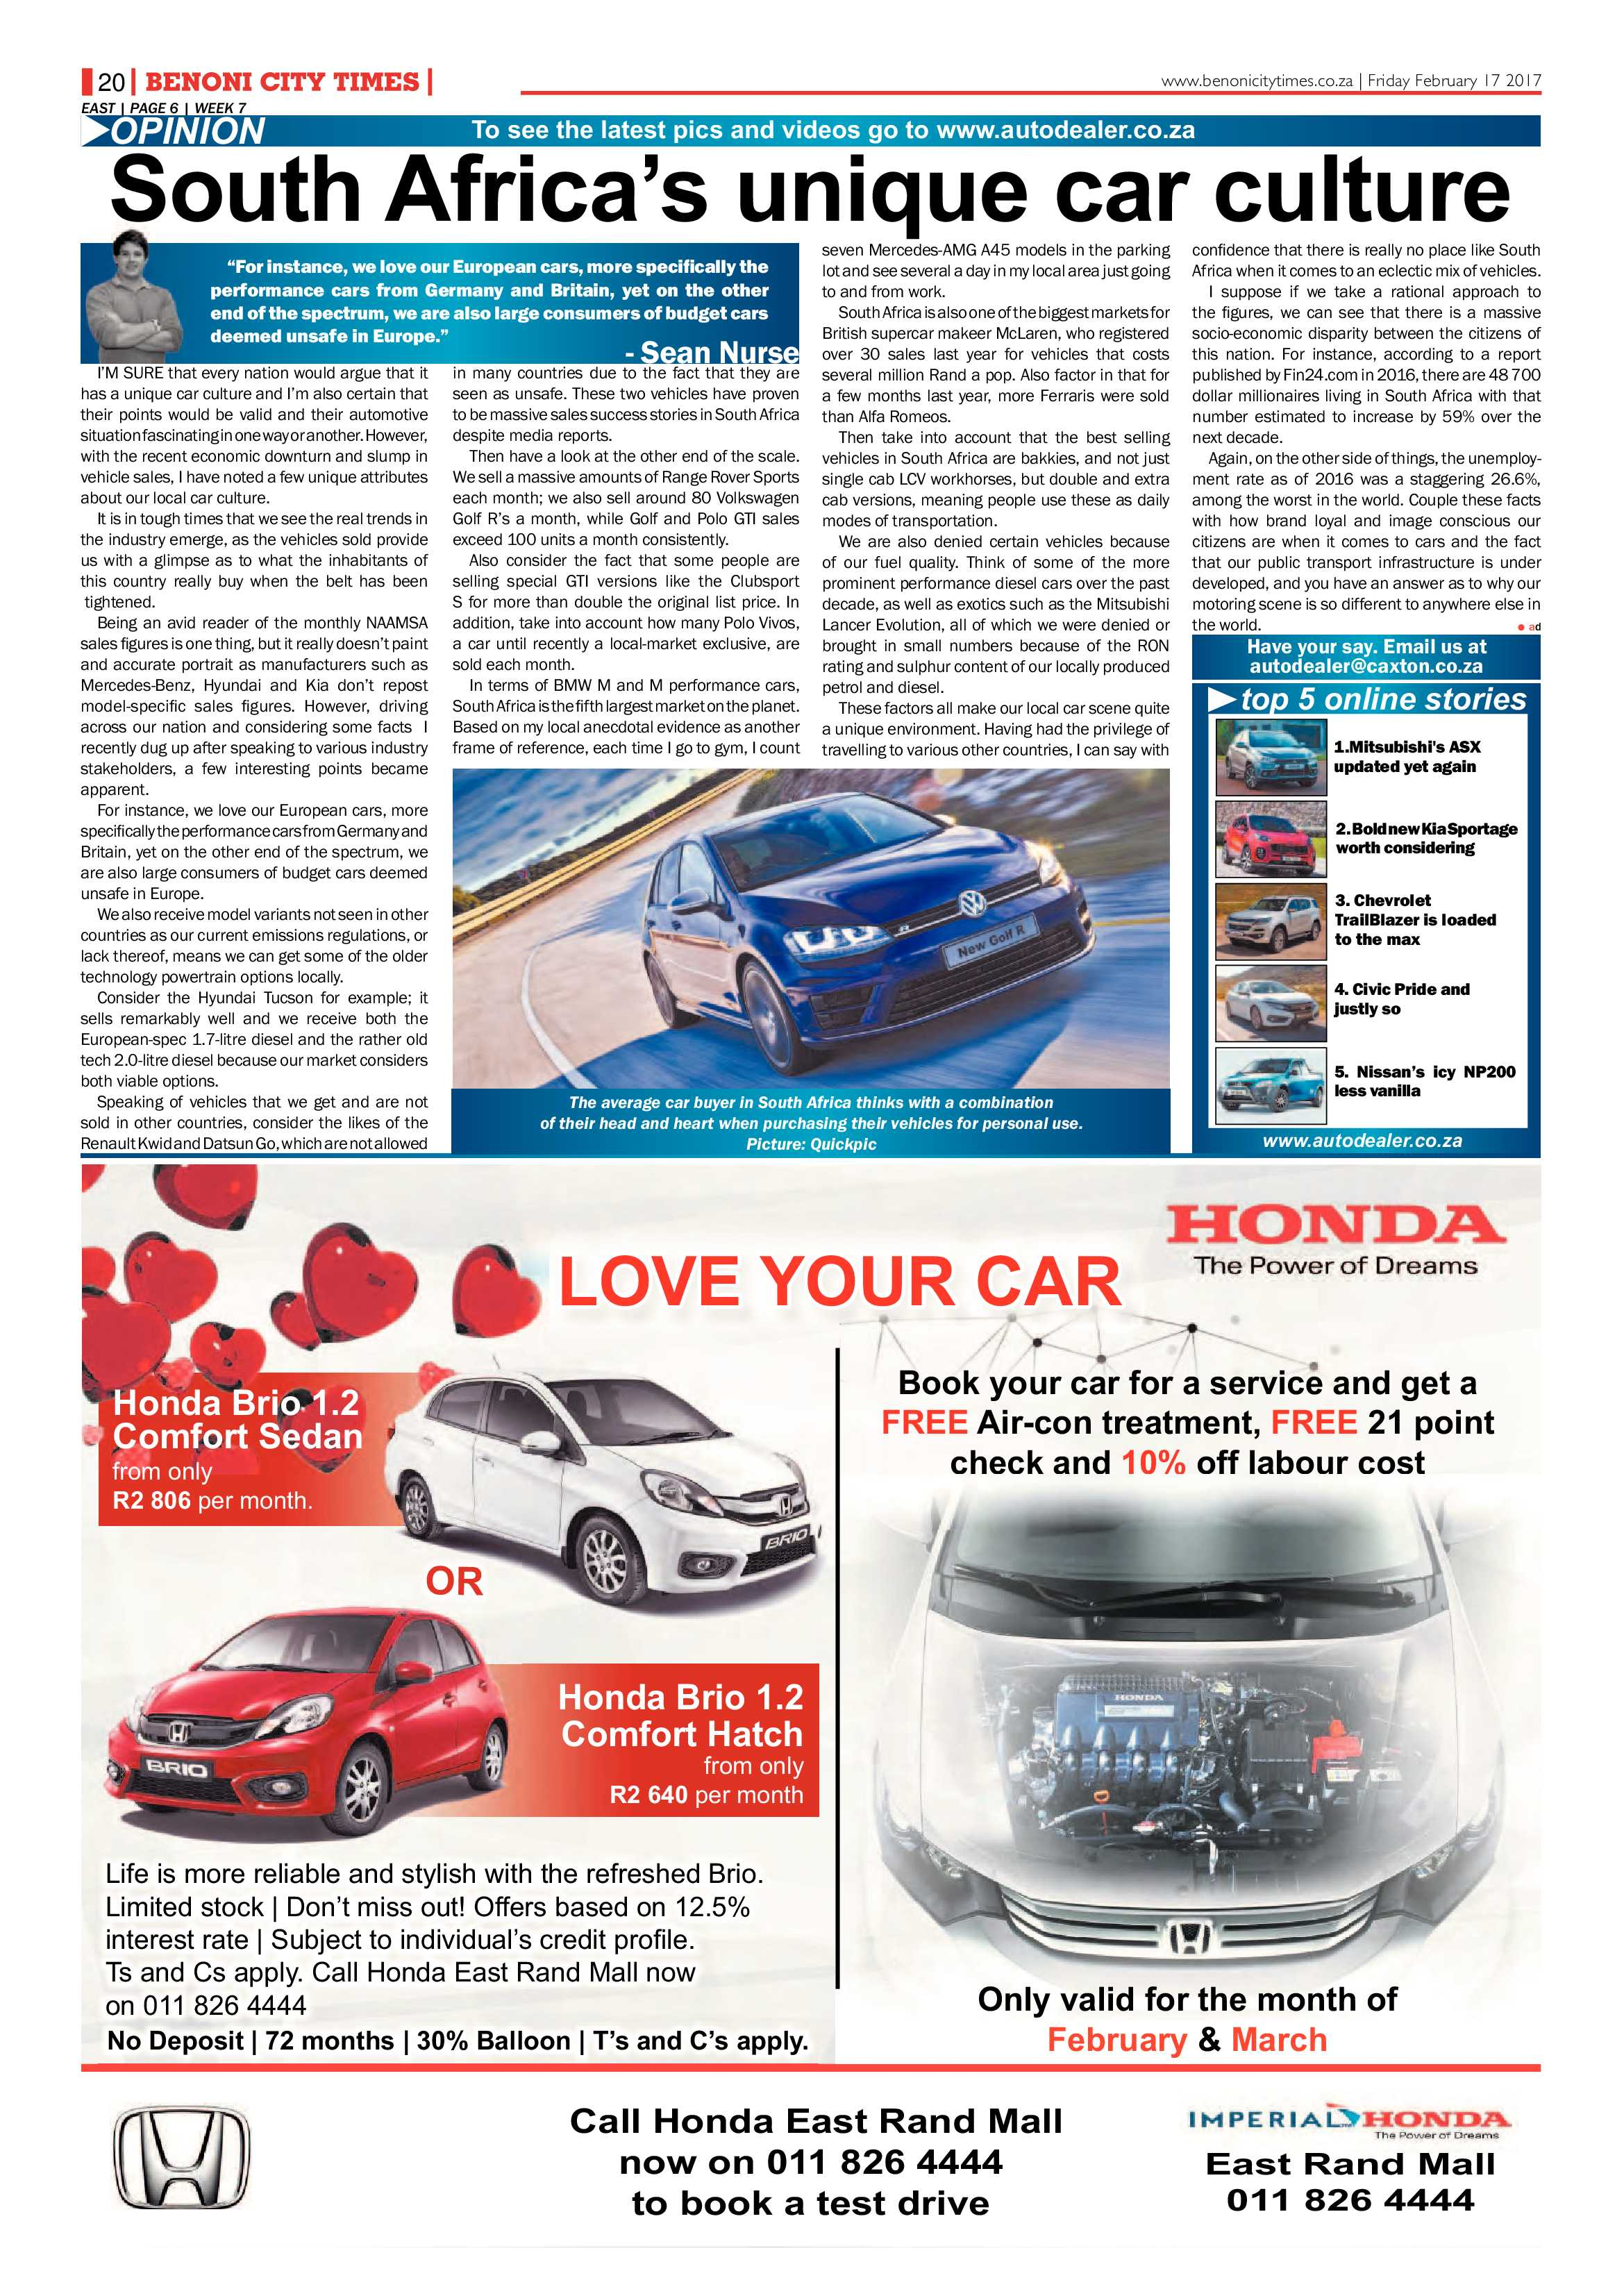 benoni-city-times-16-february-2017-epapers-page-20